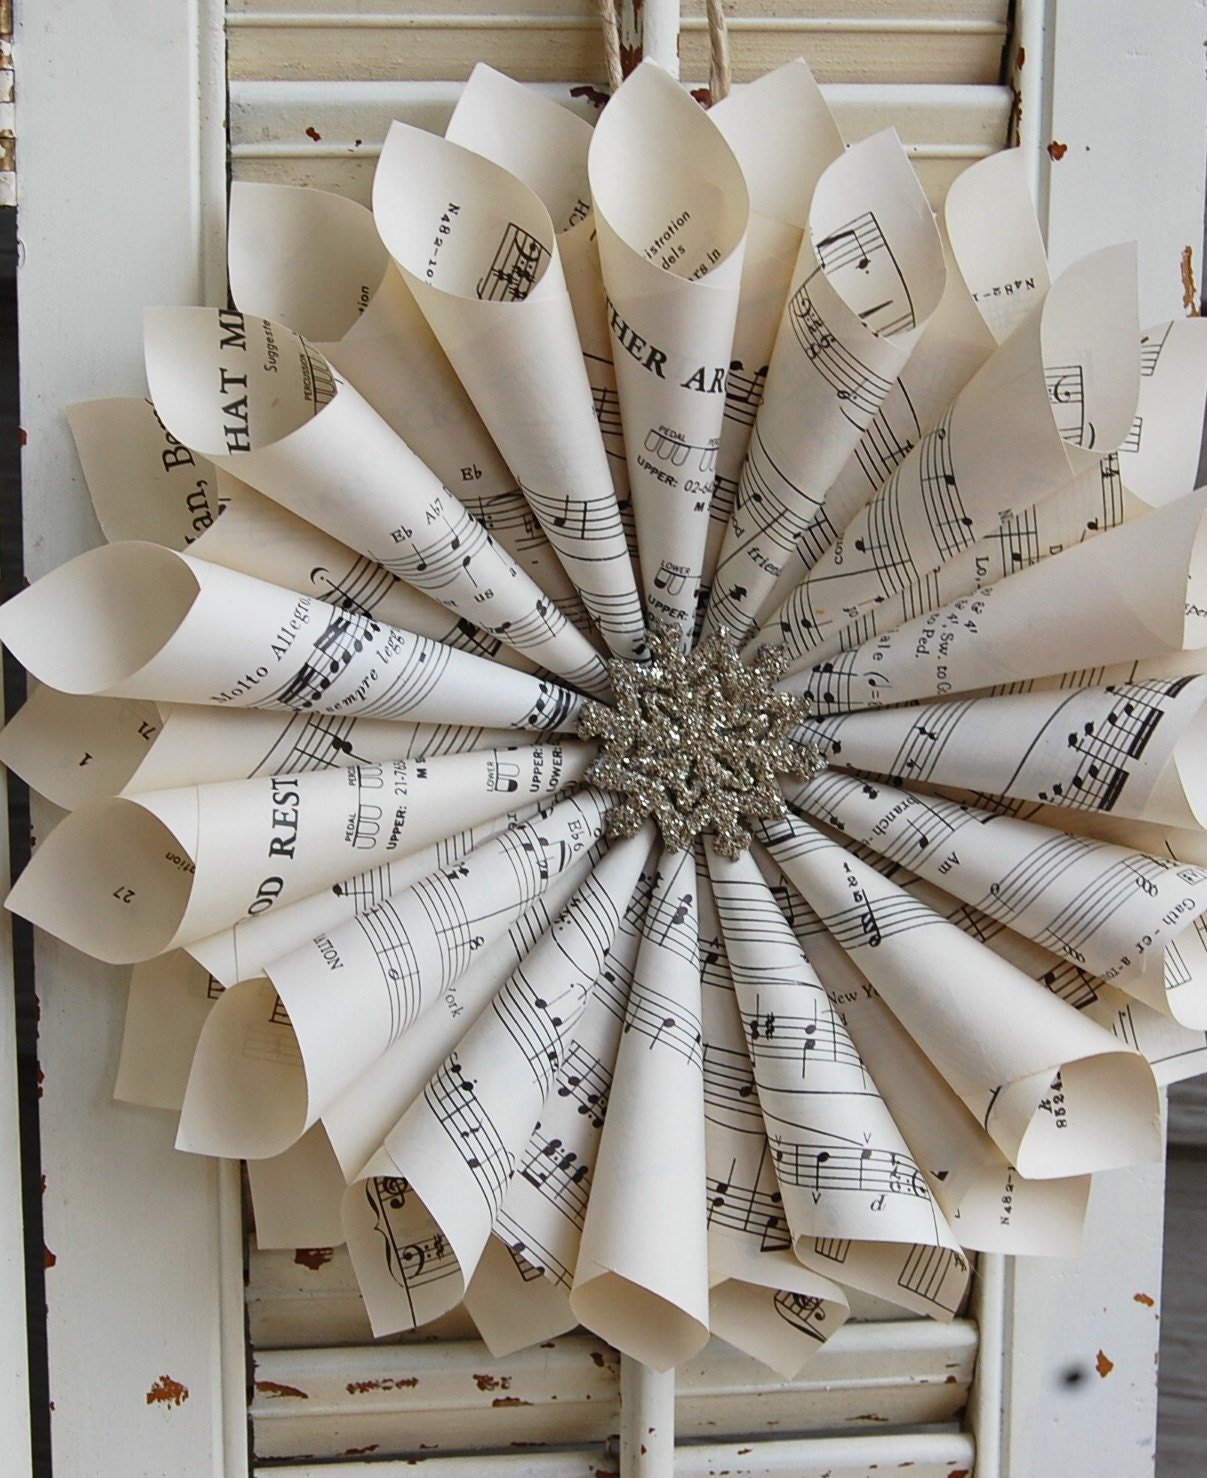 Christmas Carol Singers Decorations: Sheet Music Wreath / Winter Wreath With Silver By Roseflower48